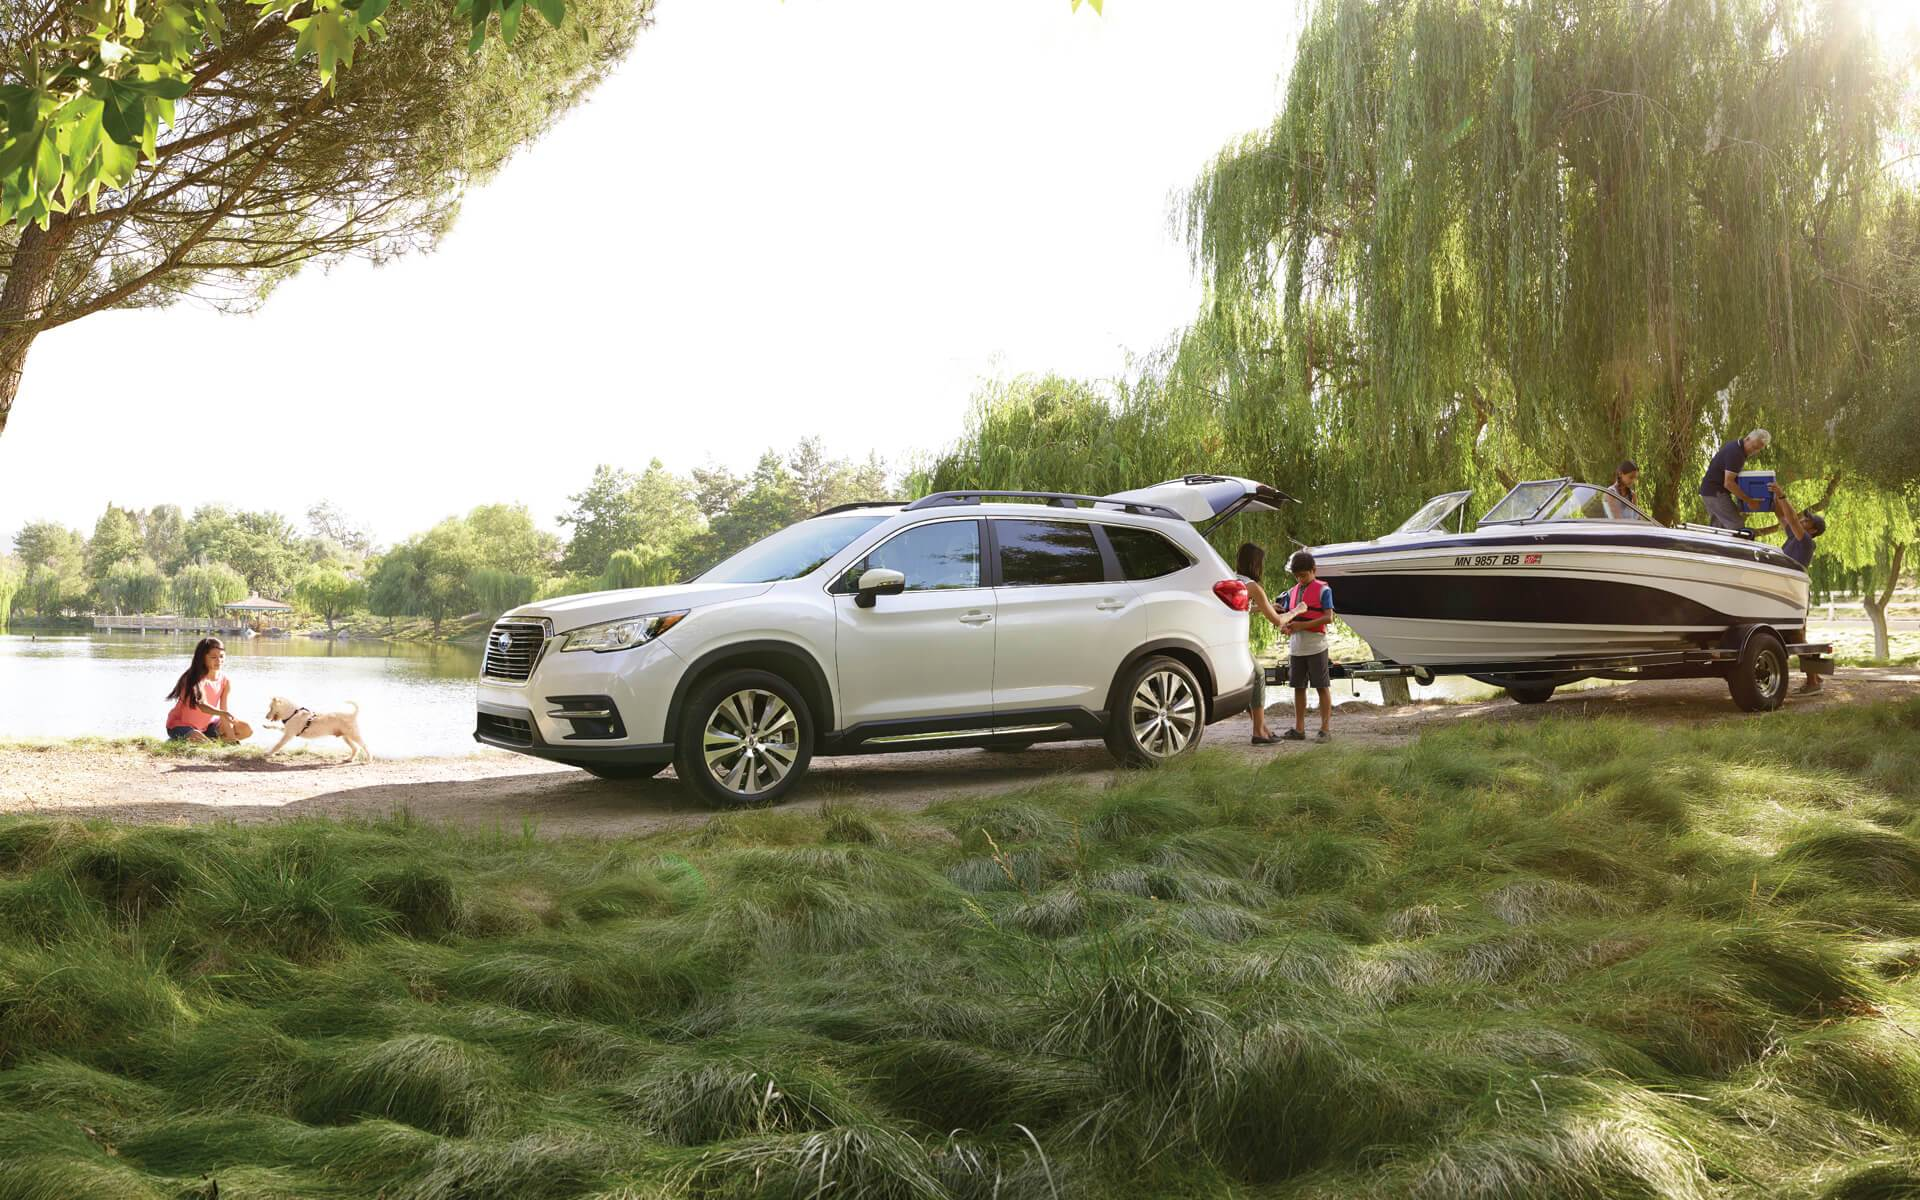 white 2020 subaru ascent towing a boat at a lake